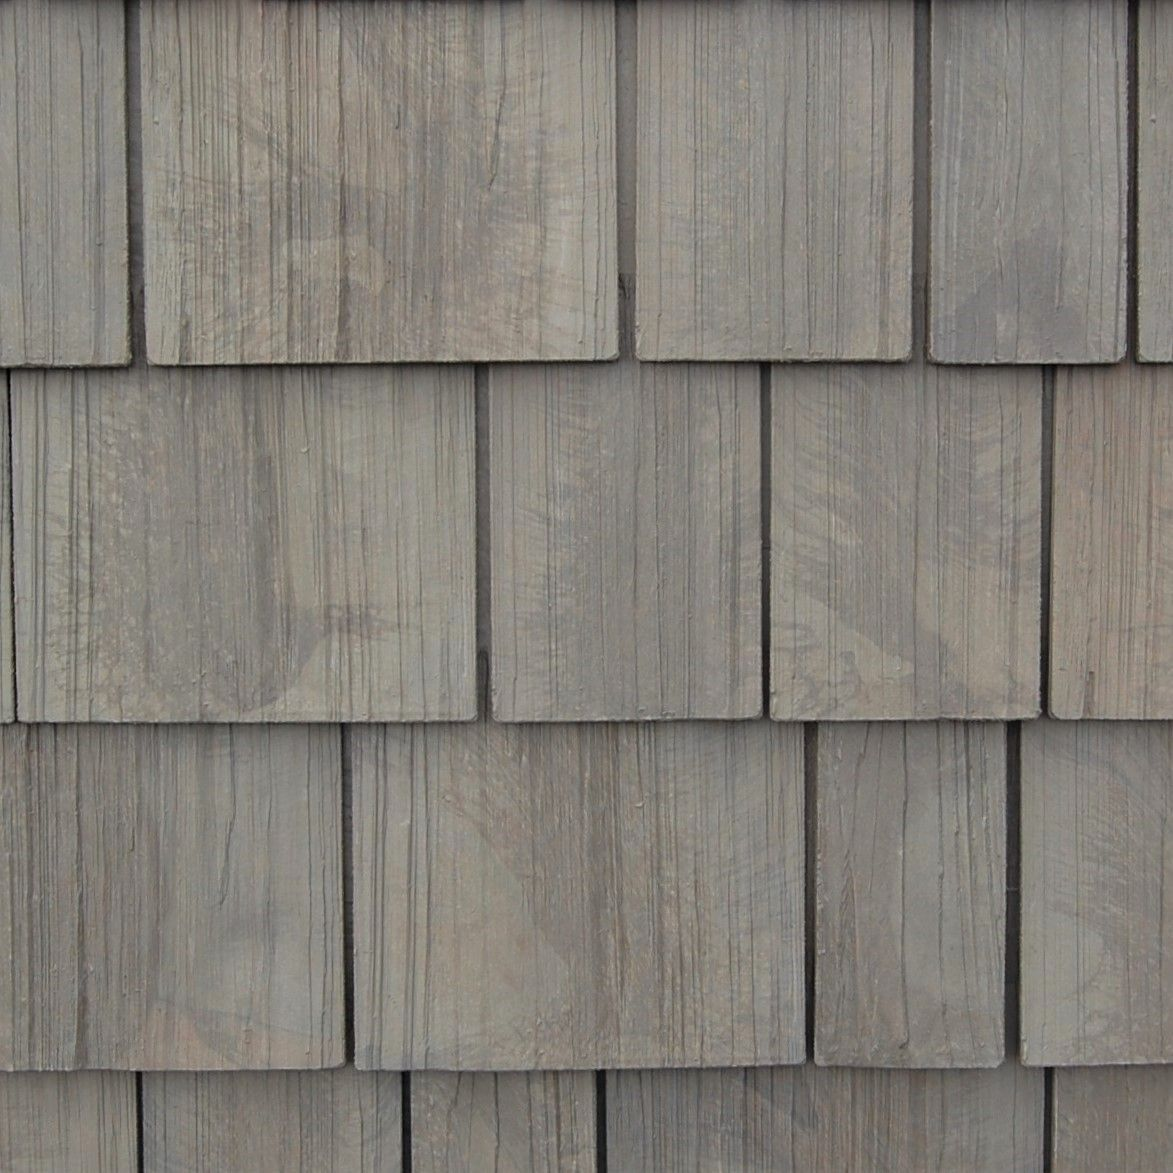 1 Synthetic Shake Roofing Best Composite Cedar Shake Shingles Shake Roof Cedar Shake Roof Cedar Wood Siding